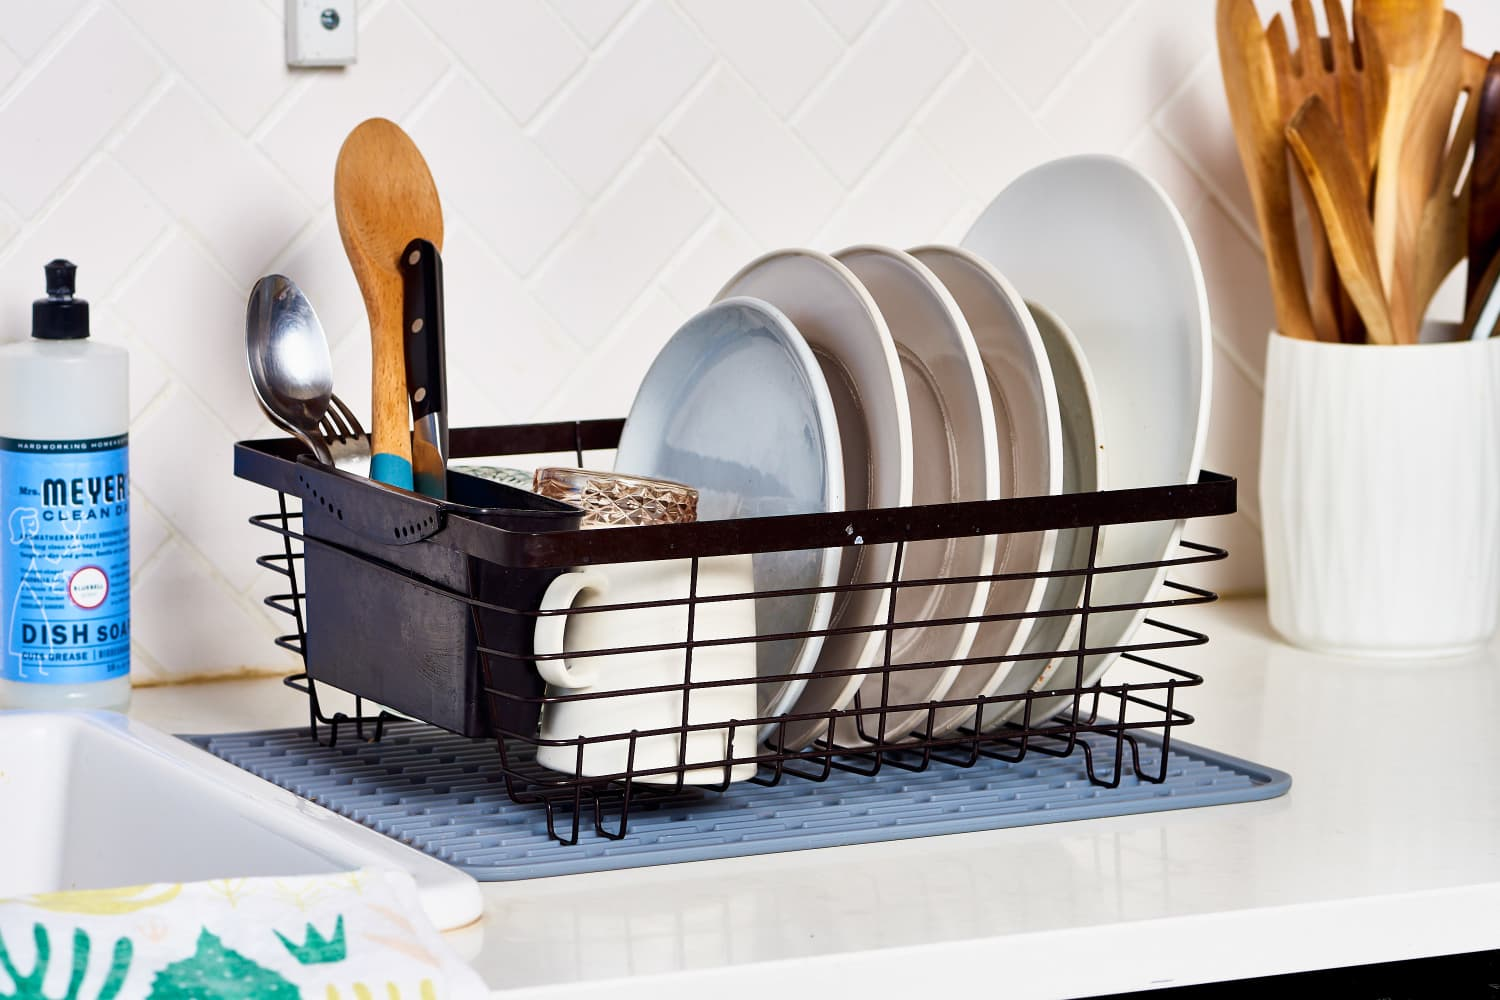 How Often You Need to Clean Your Dish Rack, According to a Pro House Cleaner